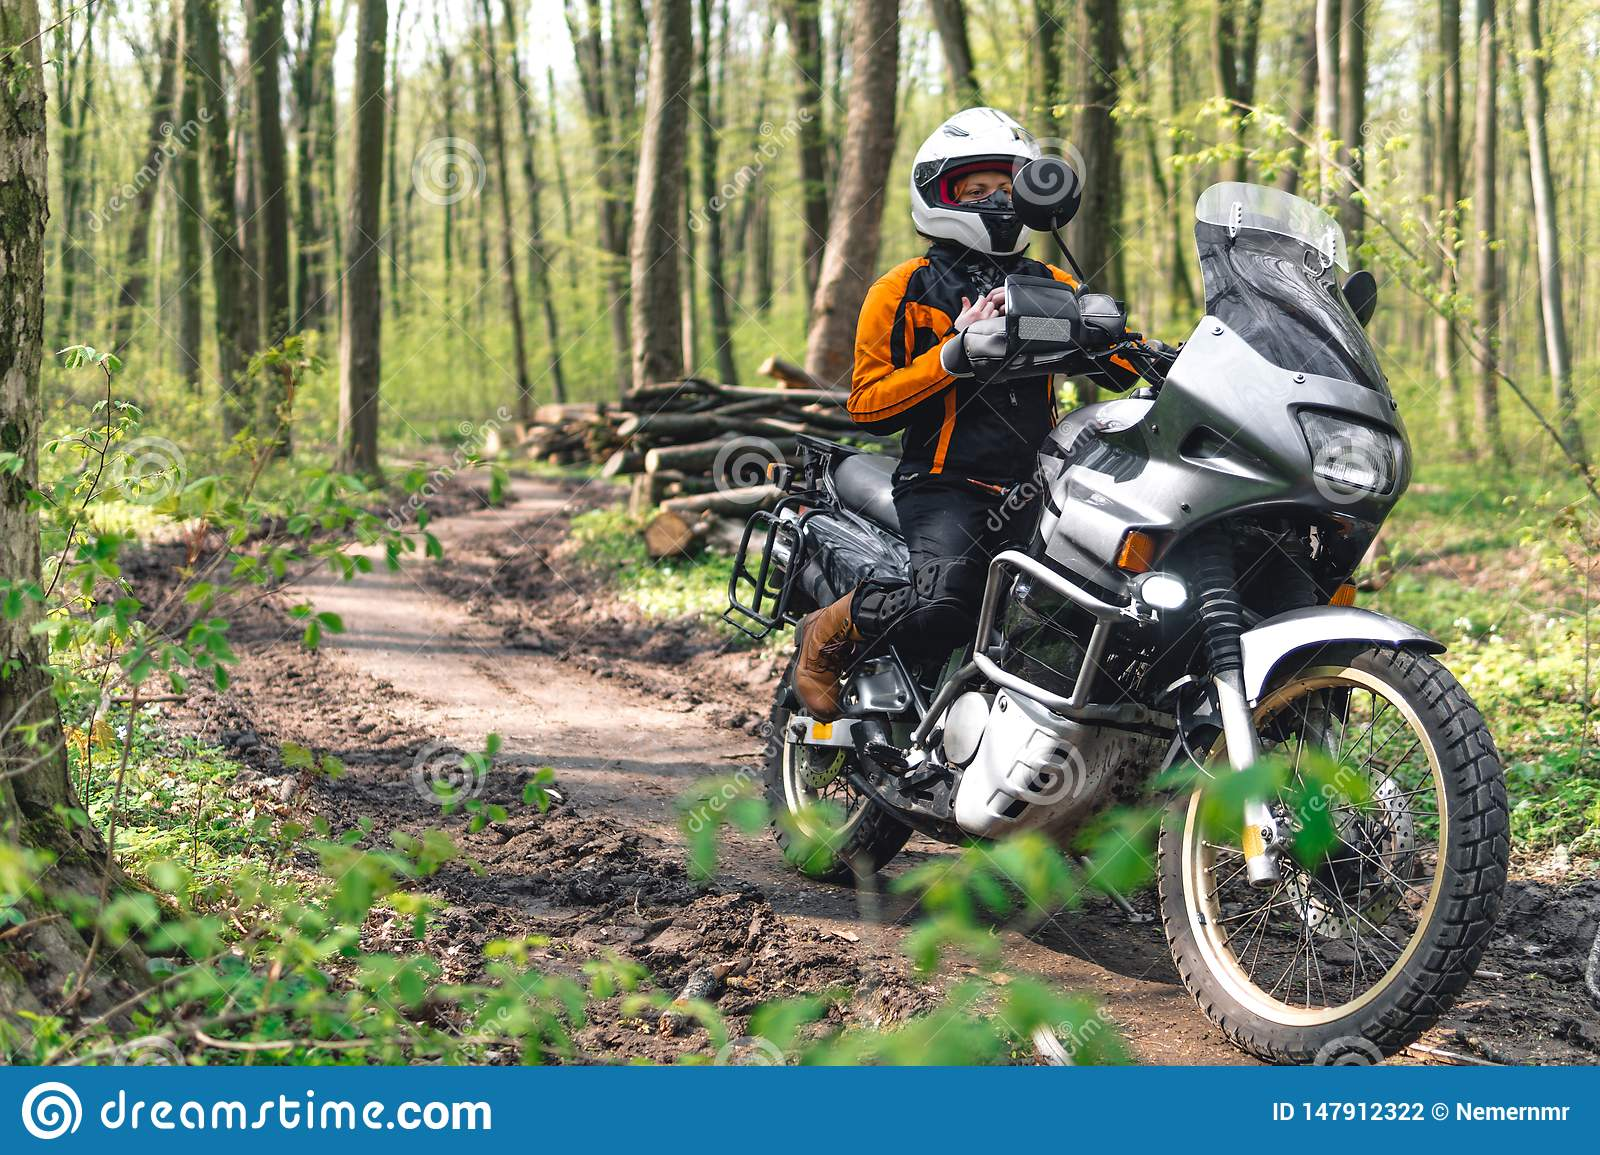 Biker girl wearing a motorcycle outfit, protective clothing, equipment, adventure touristic motorbike with side bags. outdoor